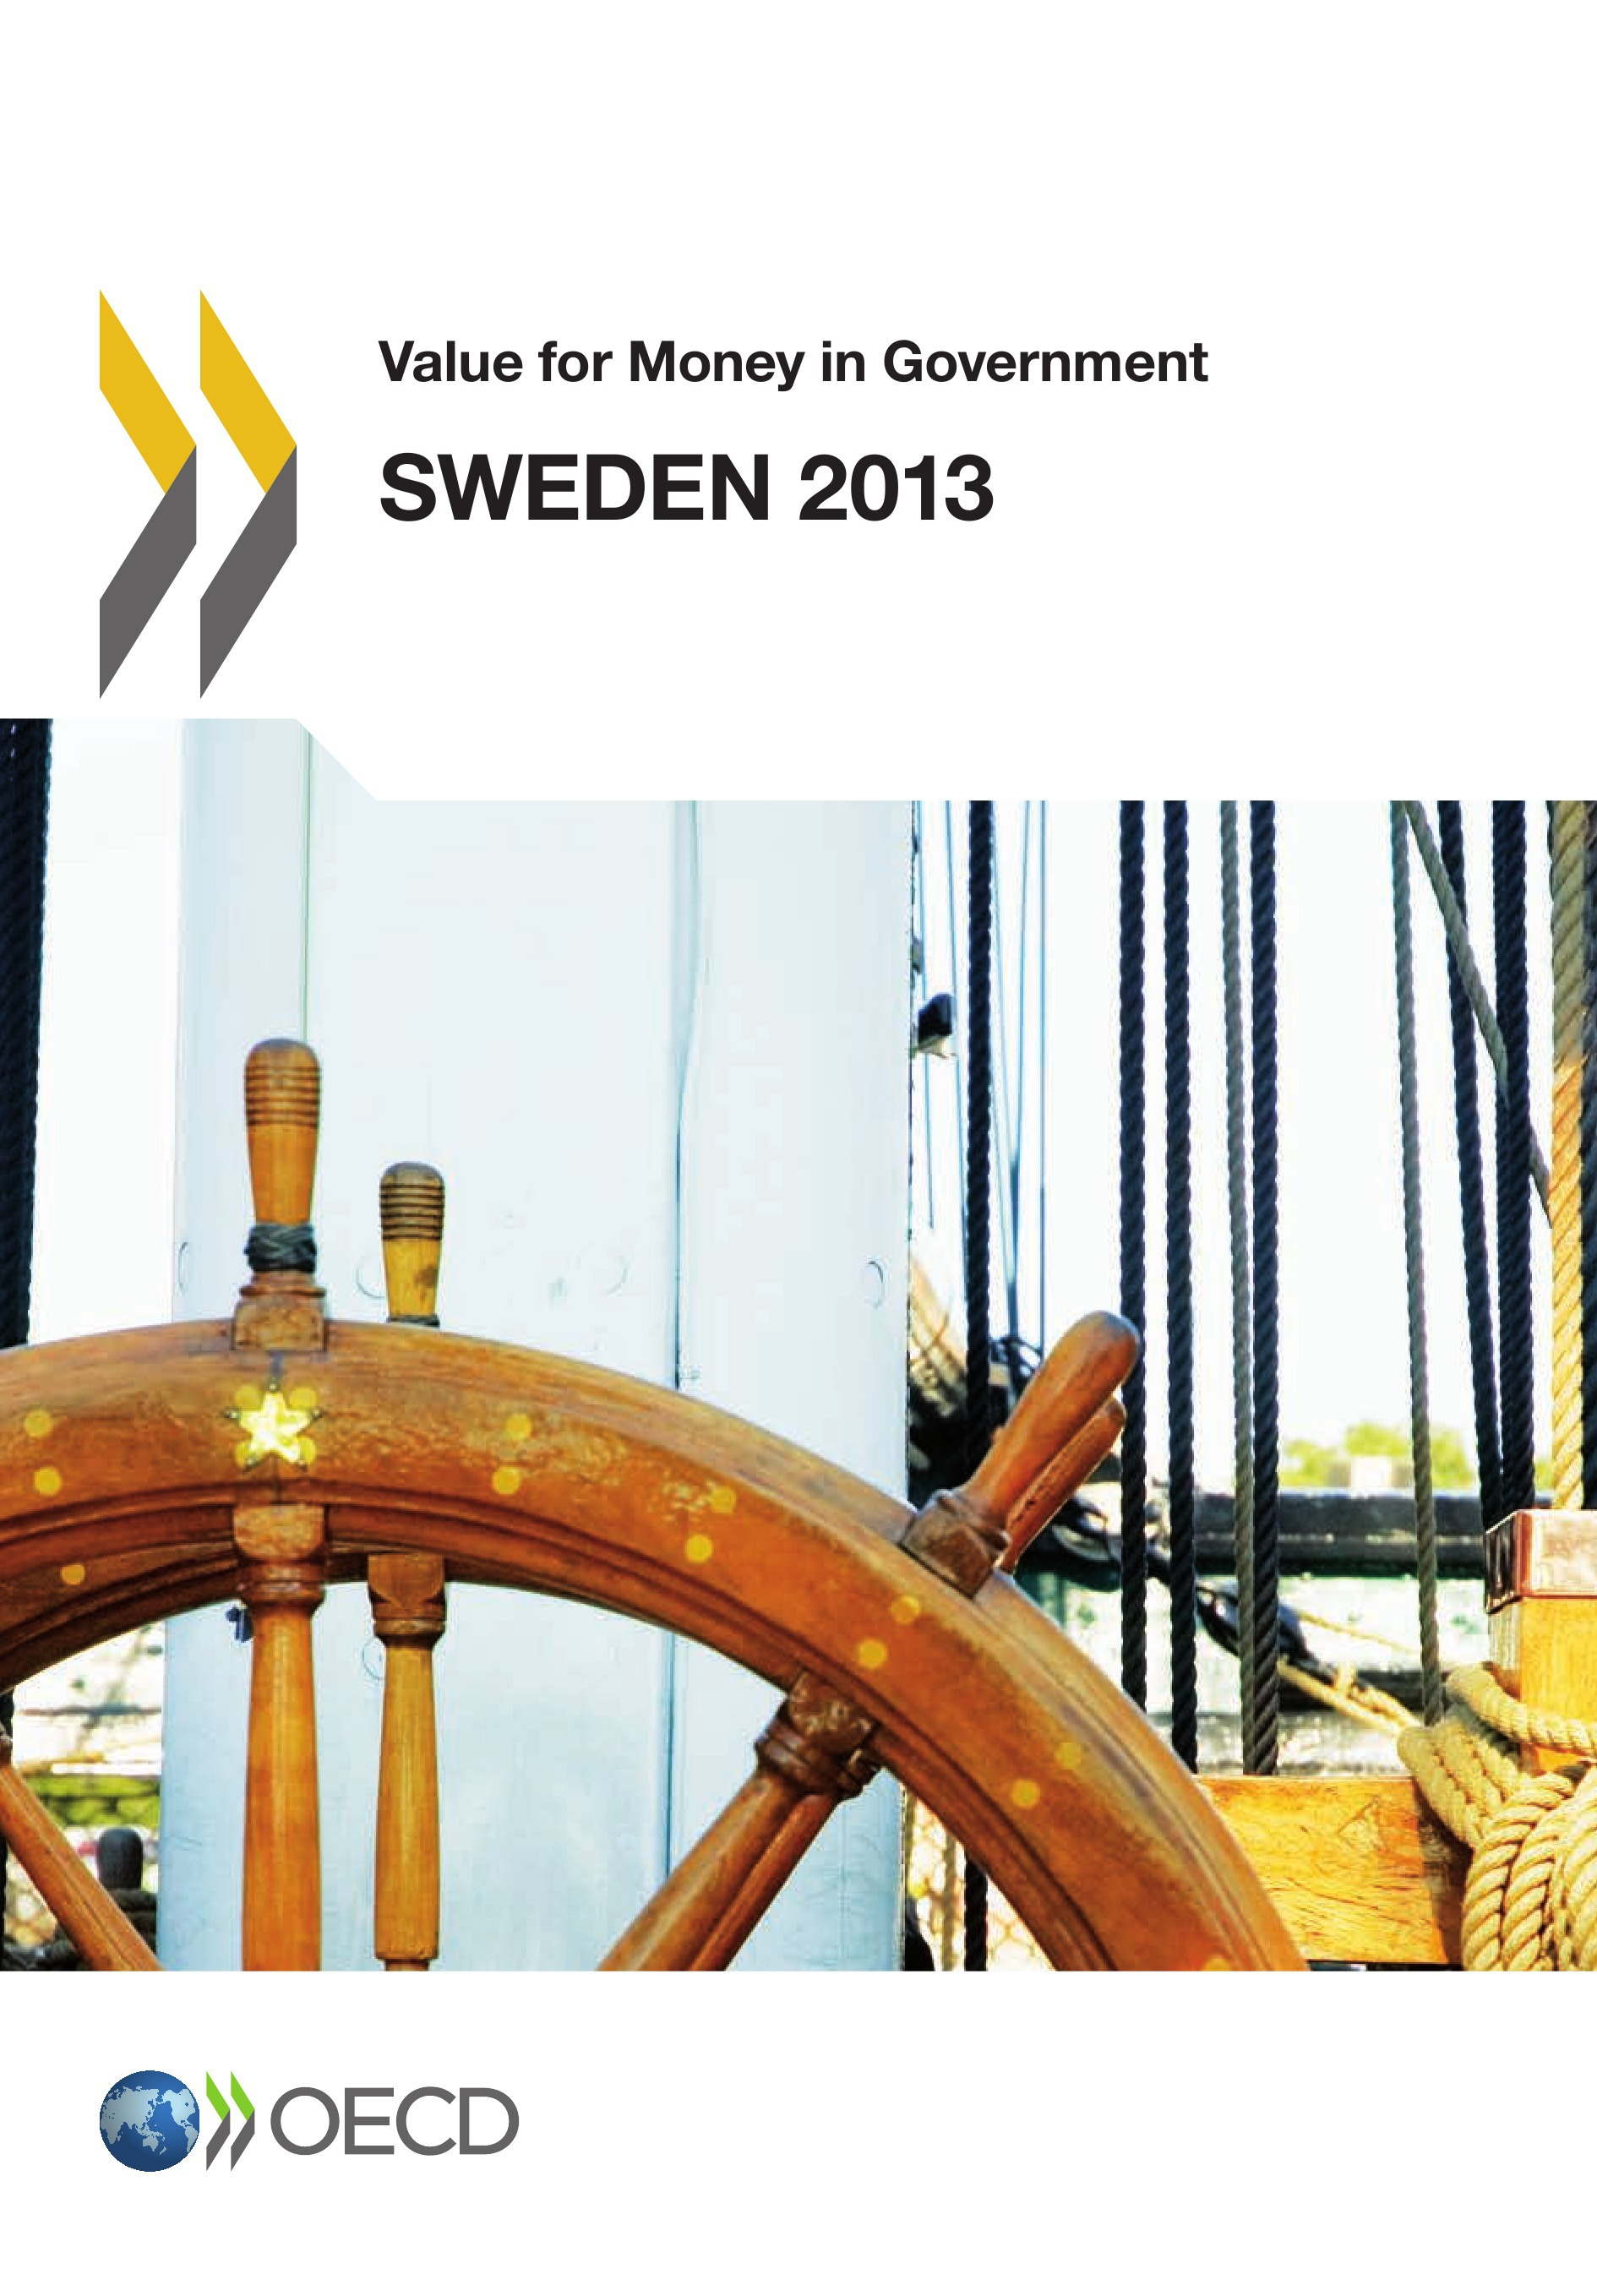 Value for Money in Government: Sweden 2013